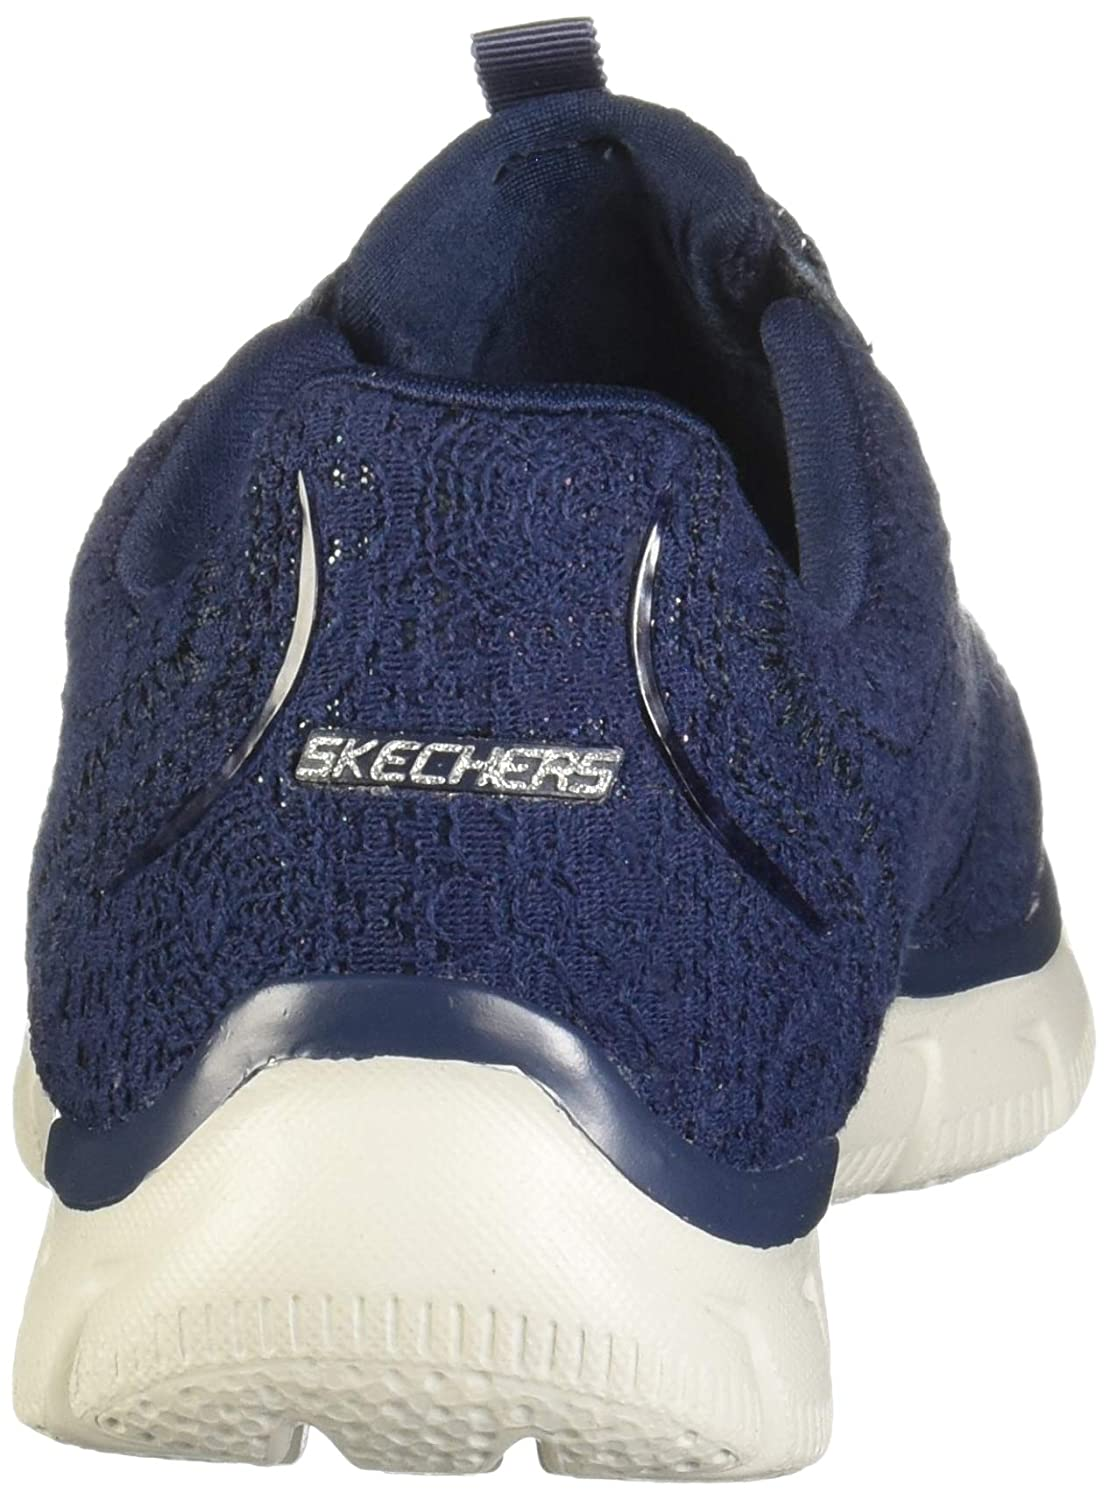 af17c0c2aa45 Skechers Womens Navy Knit  Empire Spring Glow  Slip-On Trainers   Amazon.co.uk  Shoes   Bags